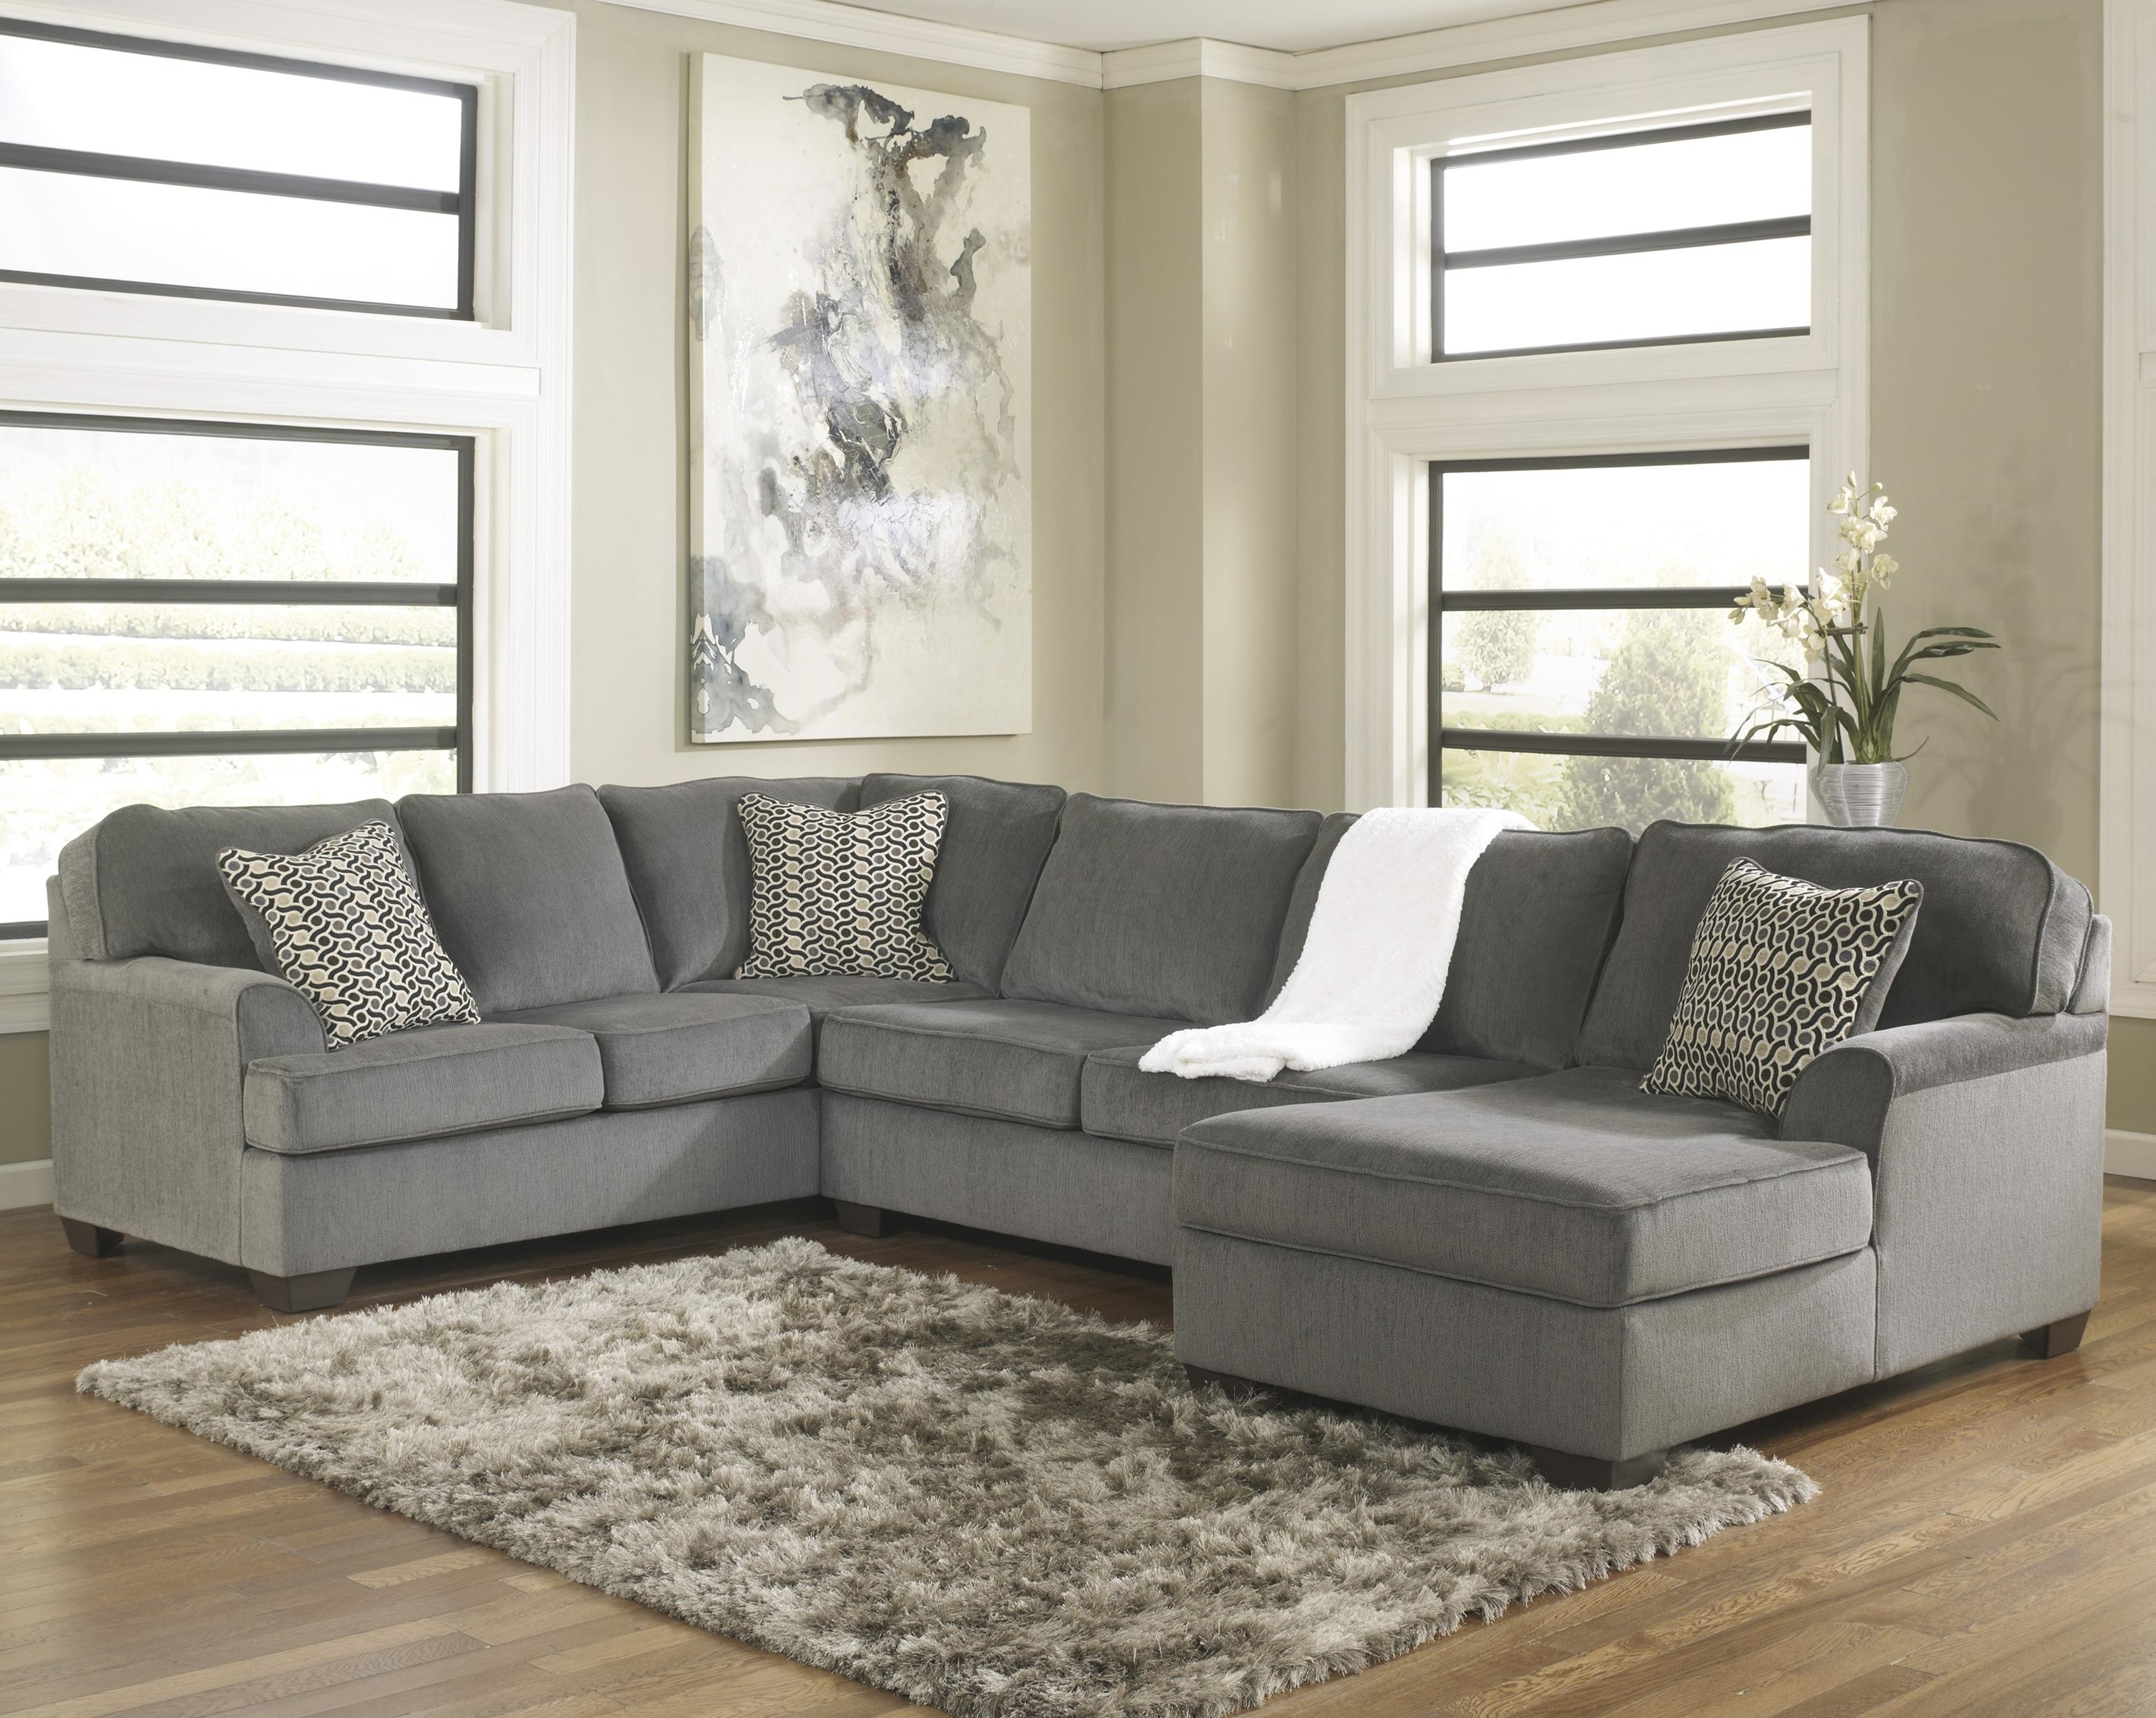 Ashley Furniture Loric – Smoke Contemporary 3 Piece Sectional With With Regard To Best And Newest Ashley Furniture Sofa Chaises (View 1 of 15)